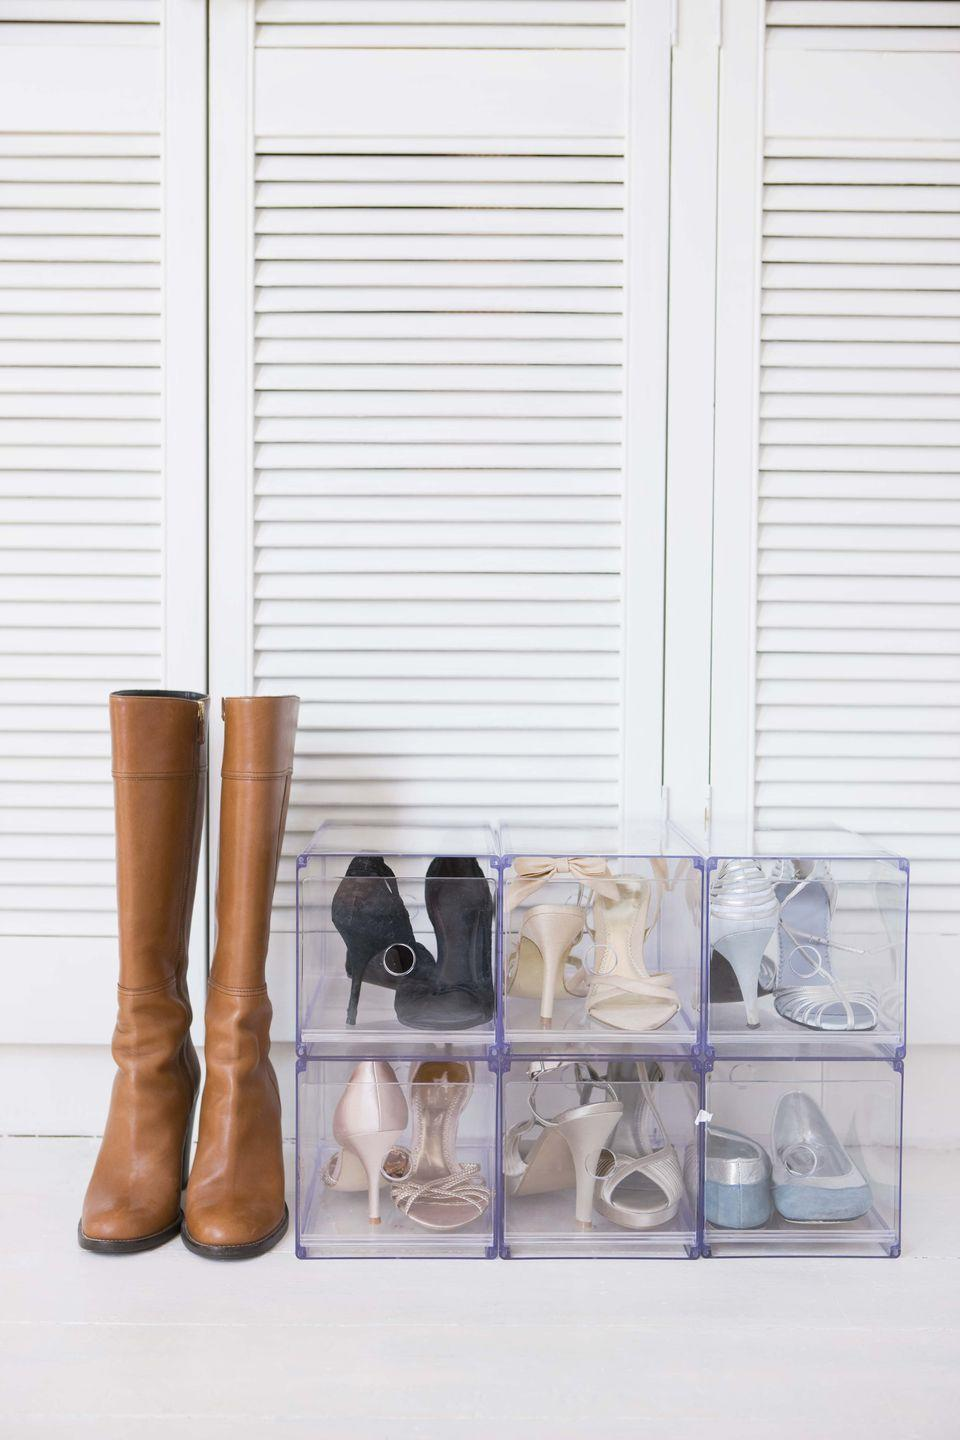 """<p>Whether you have designated shelves, shoe boxes, or a cluster of shoes at the bottom of the closet, organizing shoes heel to toe can maximize your space and give you a better look at the assortment of colors, toe styles, and heel heights.</p><p><a class=""""link rapid-noclick-resp"""" href=""""https://www.amazon.com/Seville-Classics-3-Tier-Utility-Espresso/dp/B00336TY0K/?tag=syn-yahoo-20&ascsubtag=%5Bartid%7C10063.g.36459111%5Bsrc%7Cyahoo-us"""" rel=""""nofollow noopener"""" target=""""_blank"""" data-ylk=""""slk:SHOP SHOE RACKS"""">SHOP SHOE RACKS</a></p>"""